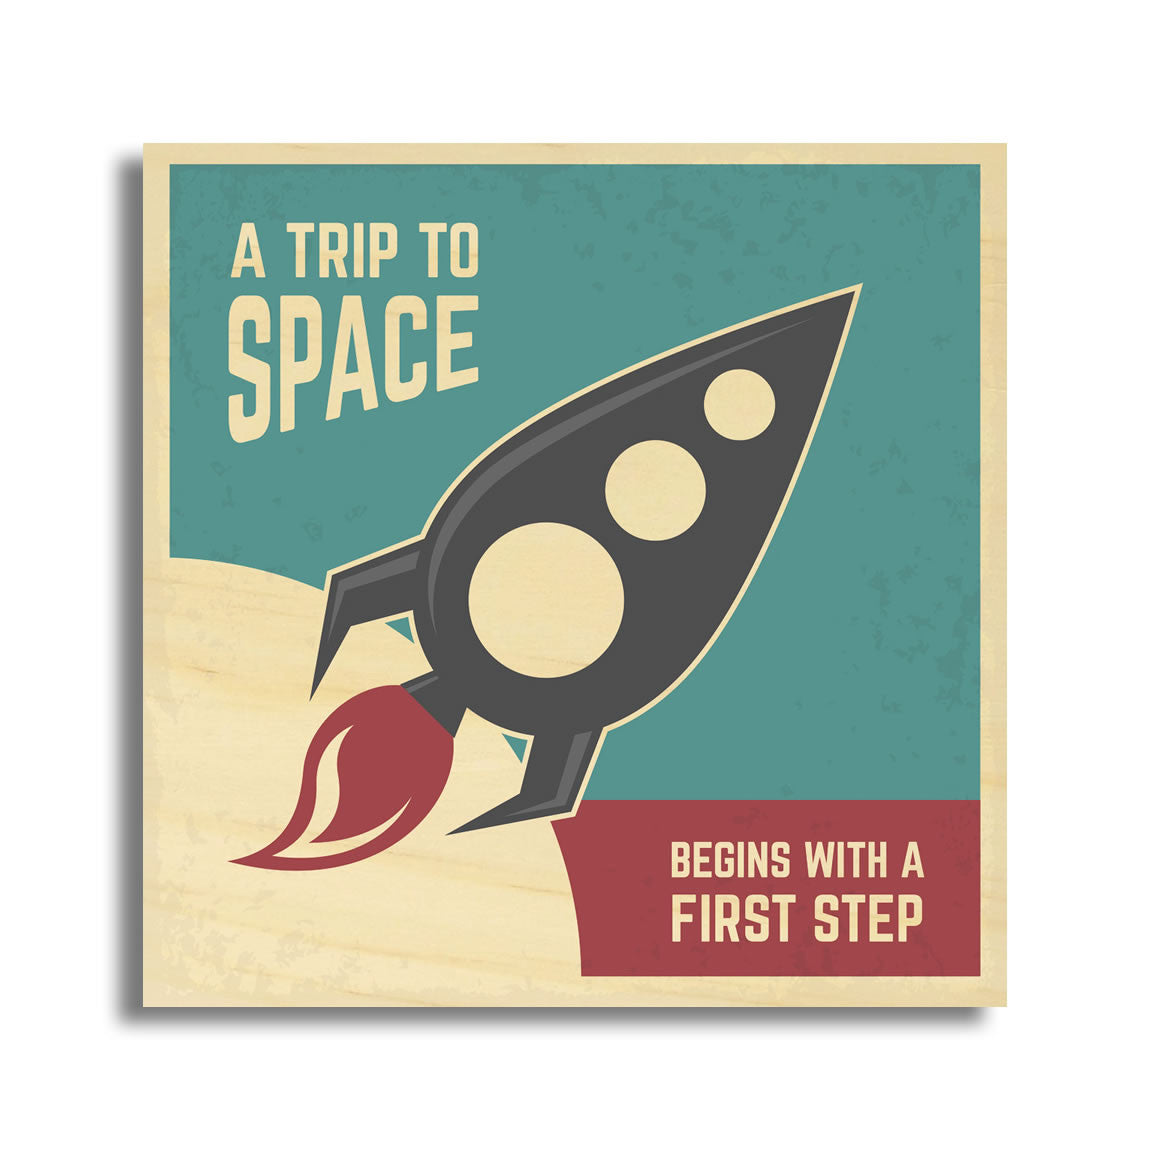 A Trip To Space Begins With A First Step